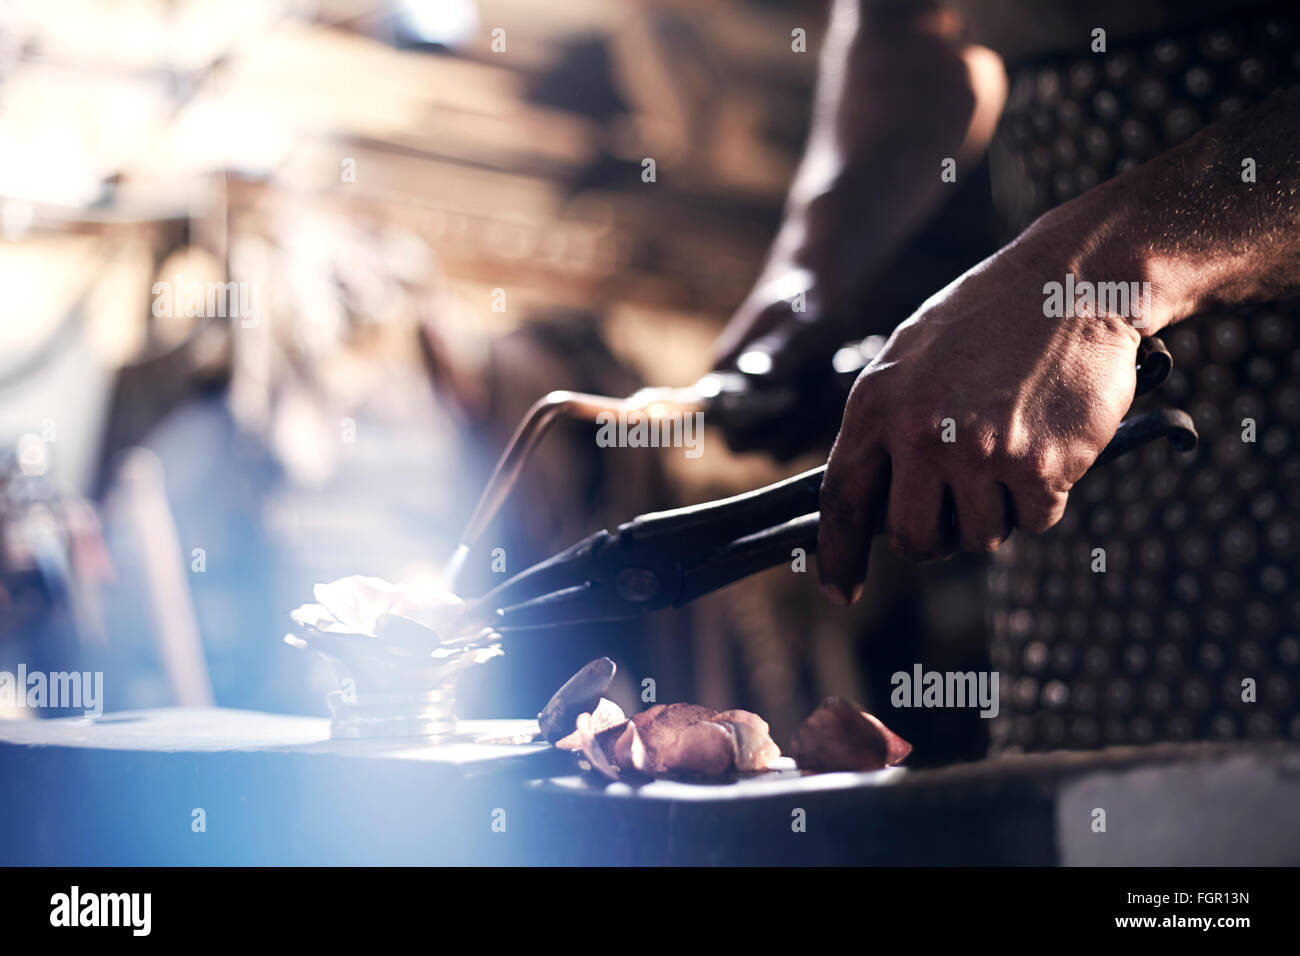 Close up of blacksmith heating metal with blowtorch in forge - Stock Image